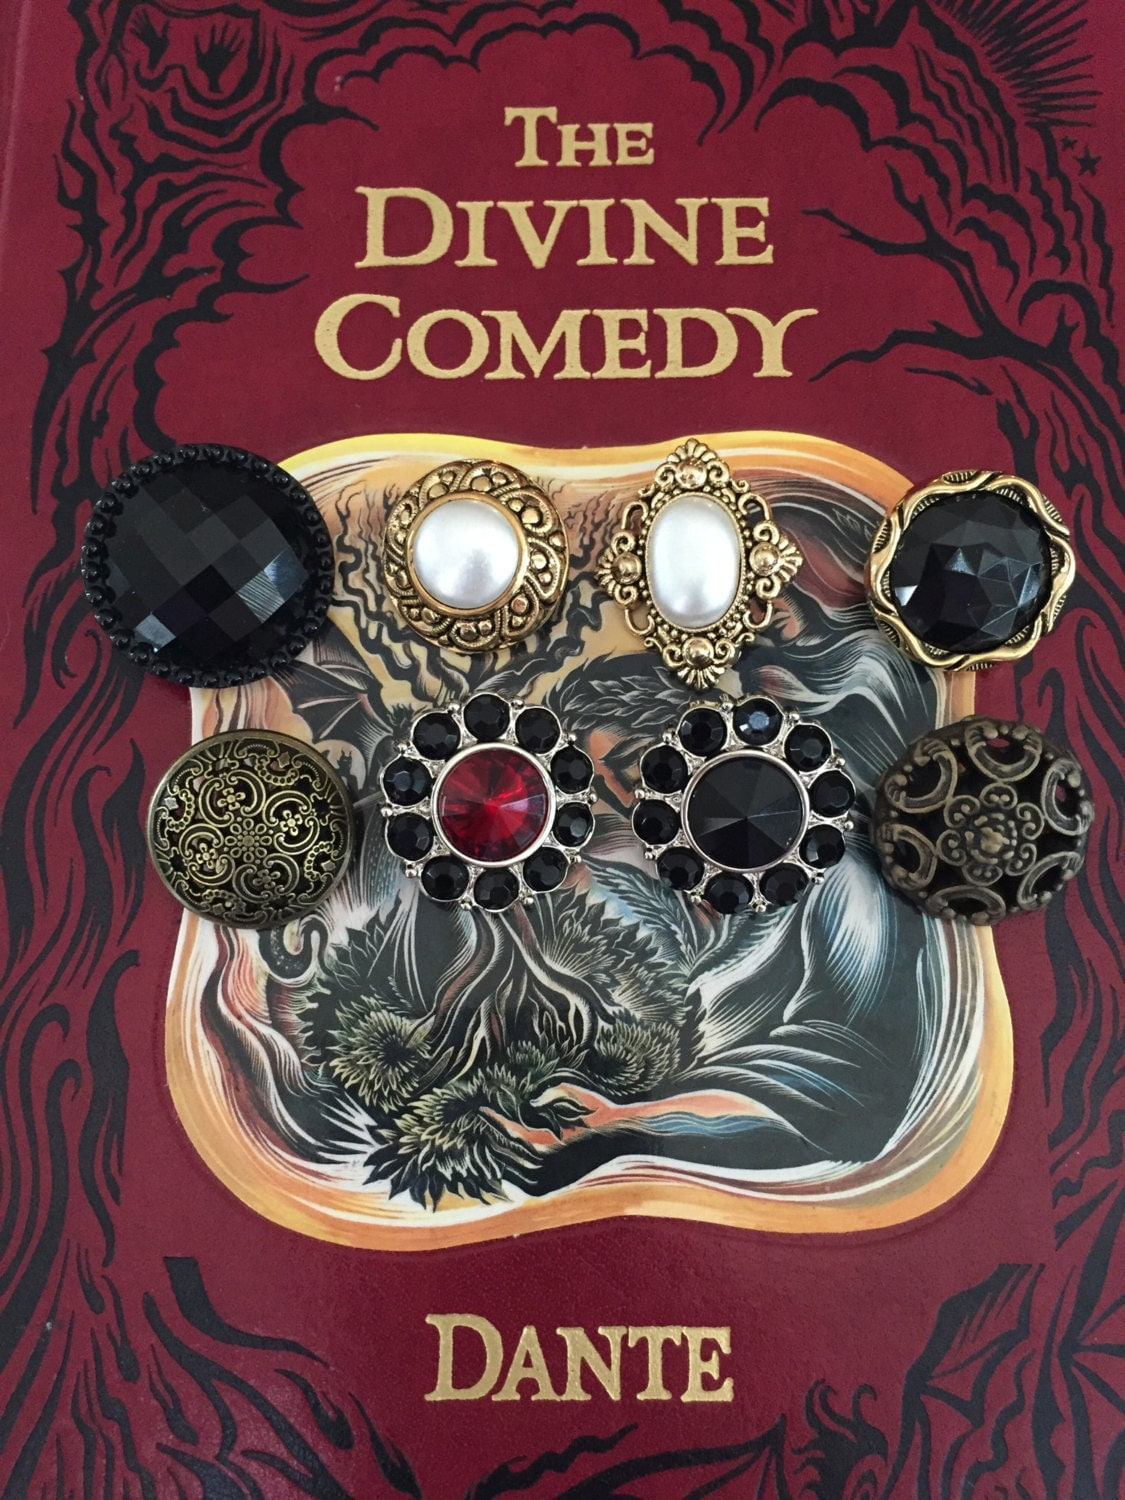 The Divine Comedy Dante Book Purse Purgatory By Novelcreations